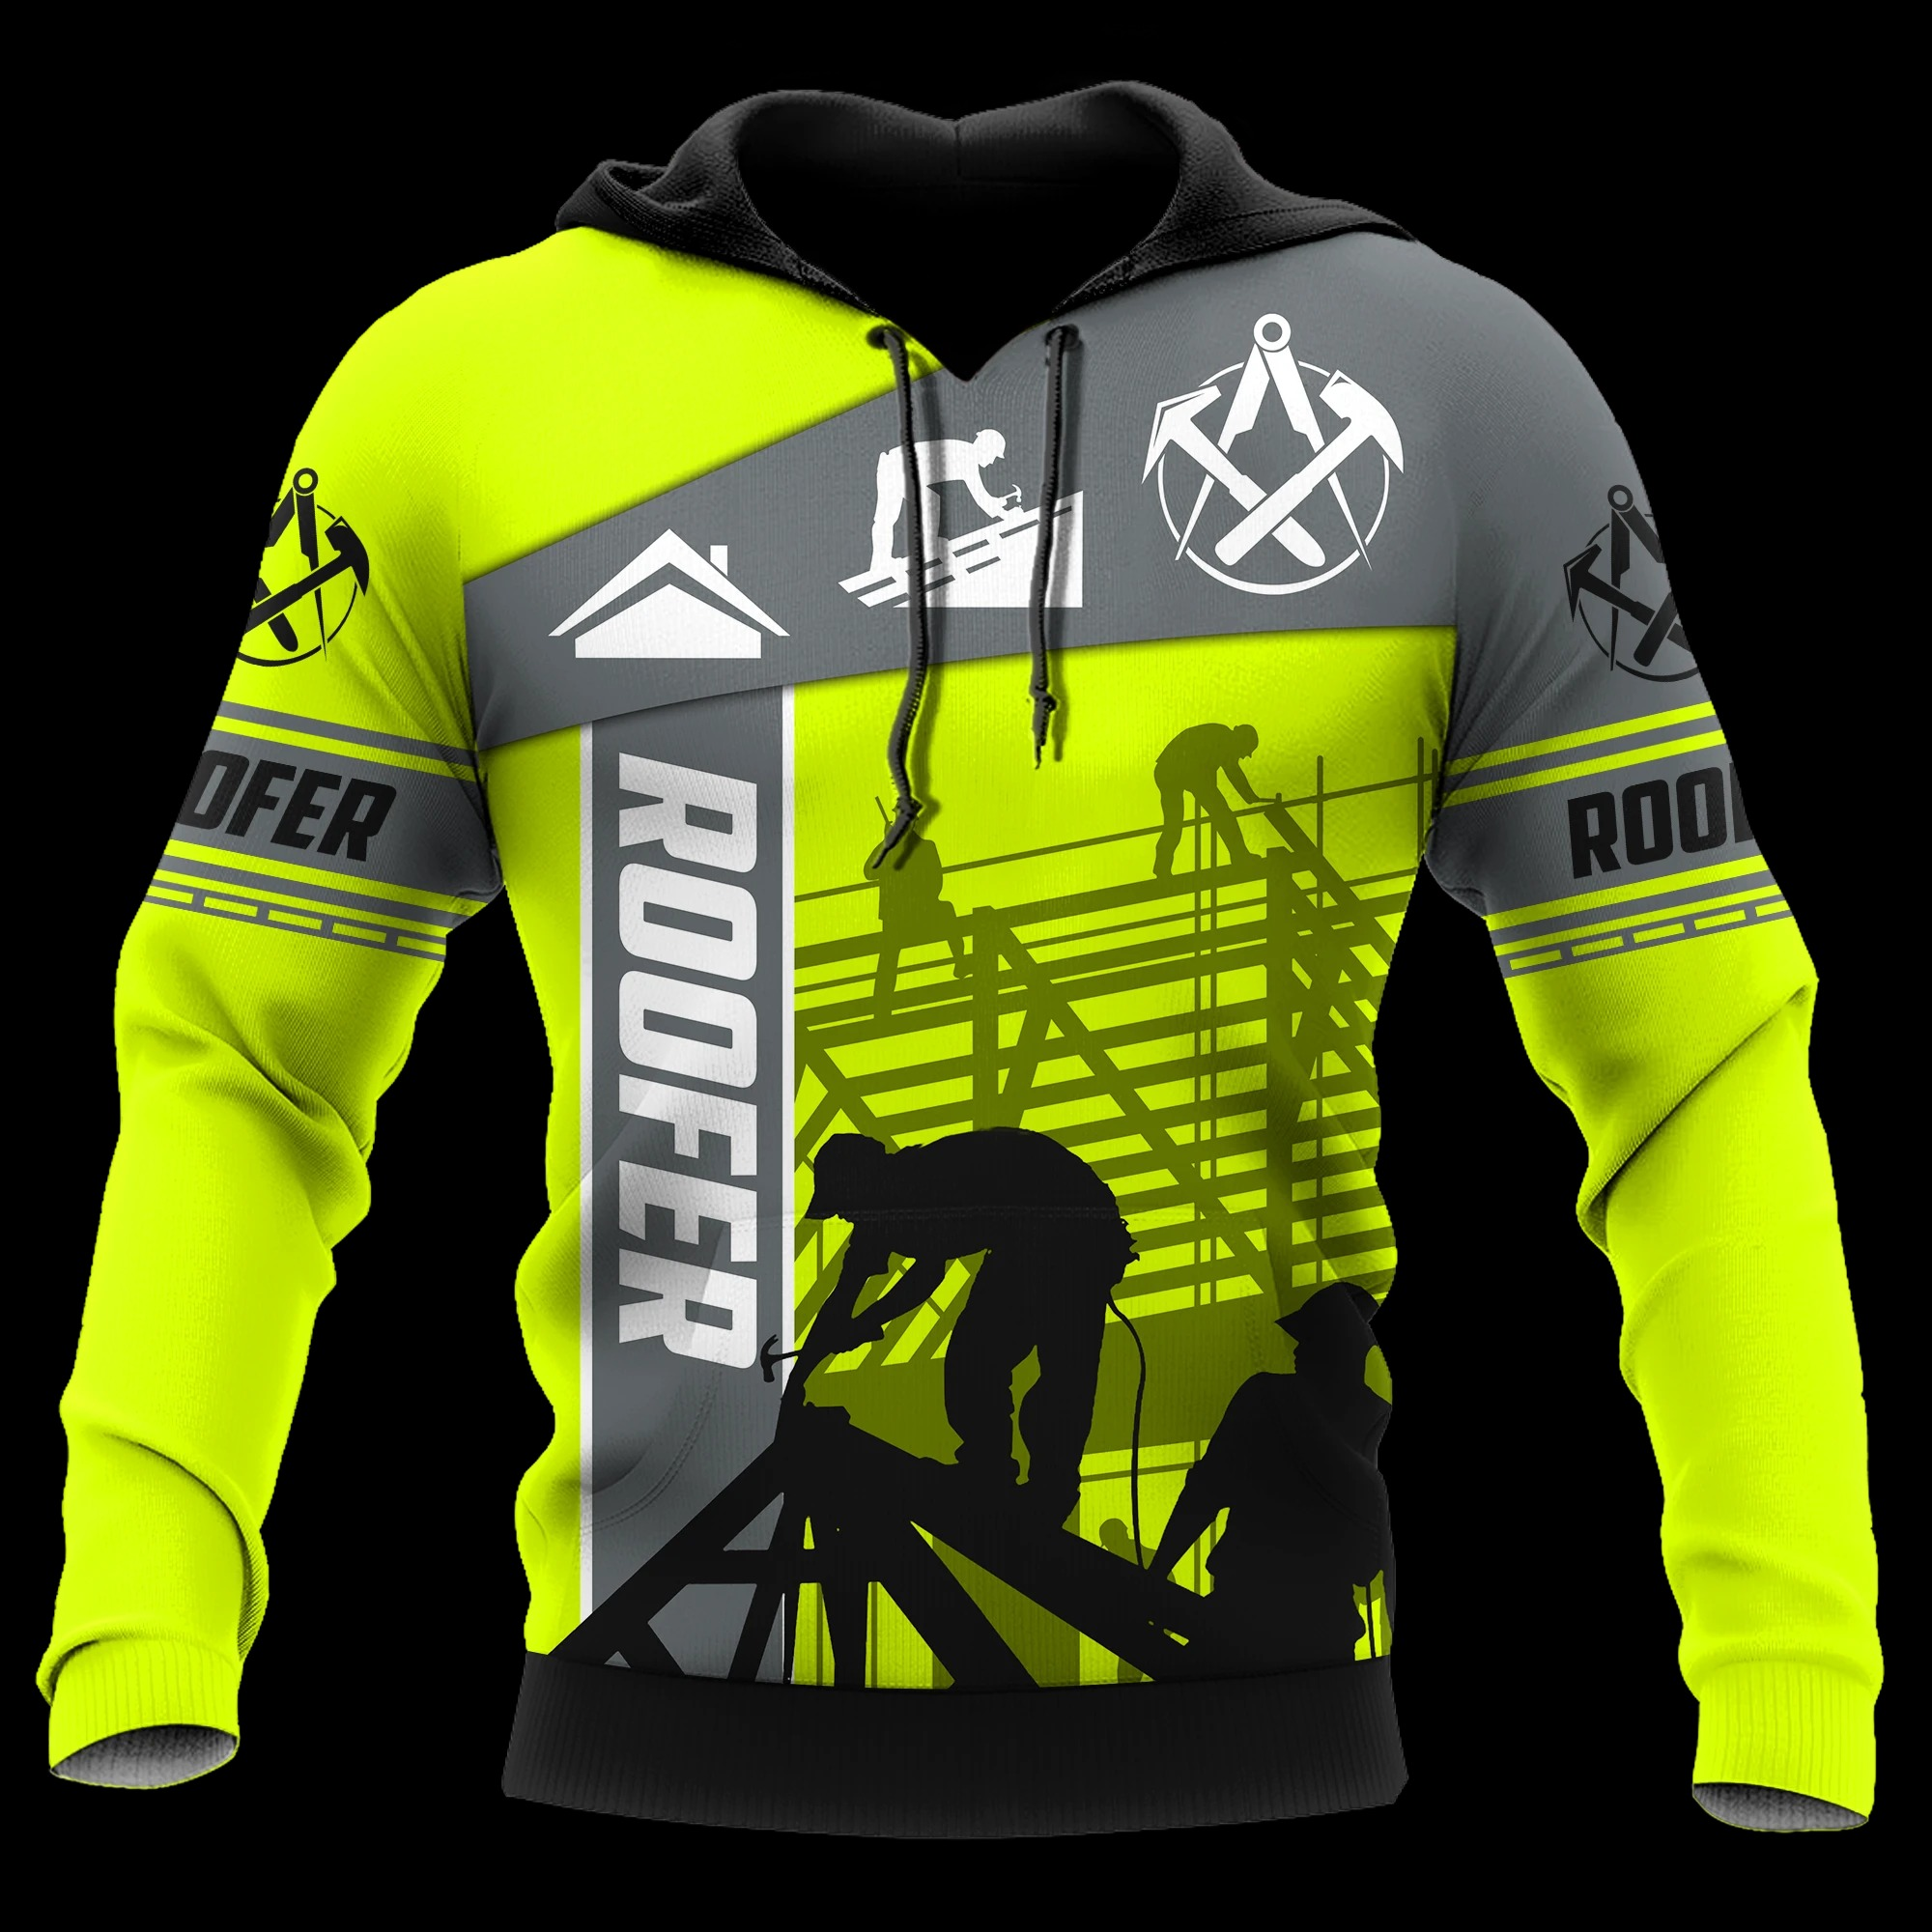 The Roofer Green 3D All Over Printed Hoodie